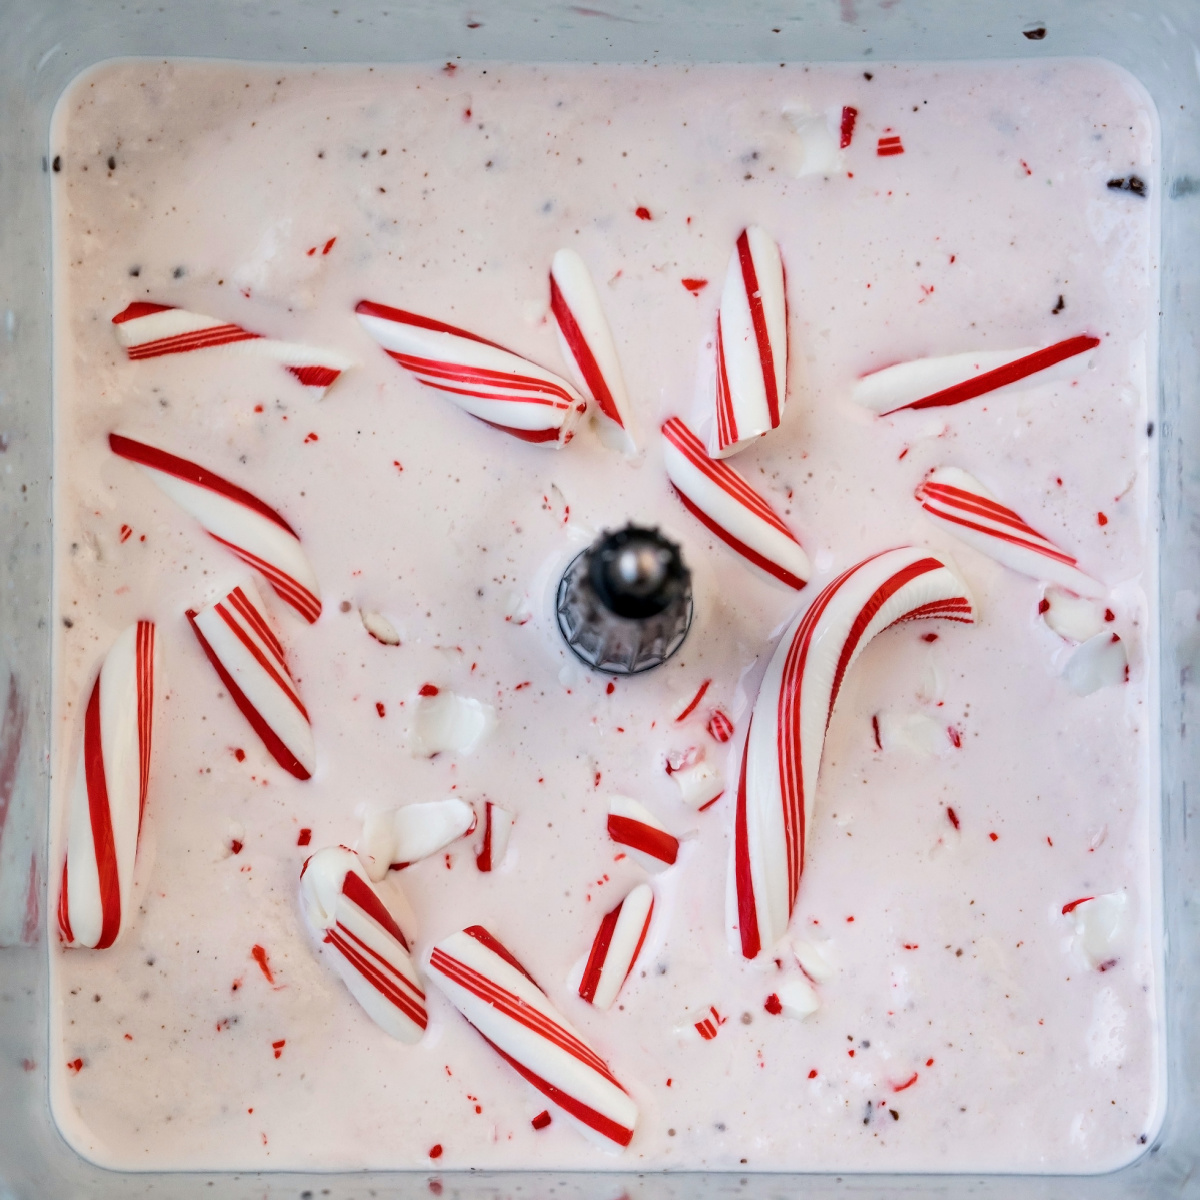 A close up picture of the peppermint milkshake with candy cane pieces on top.